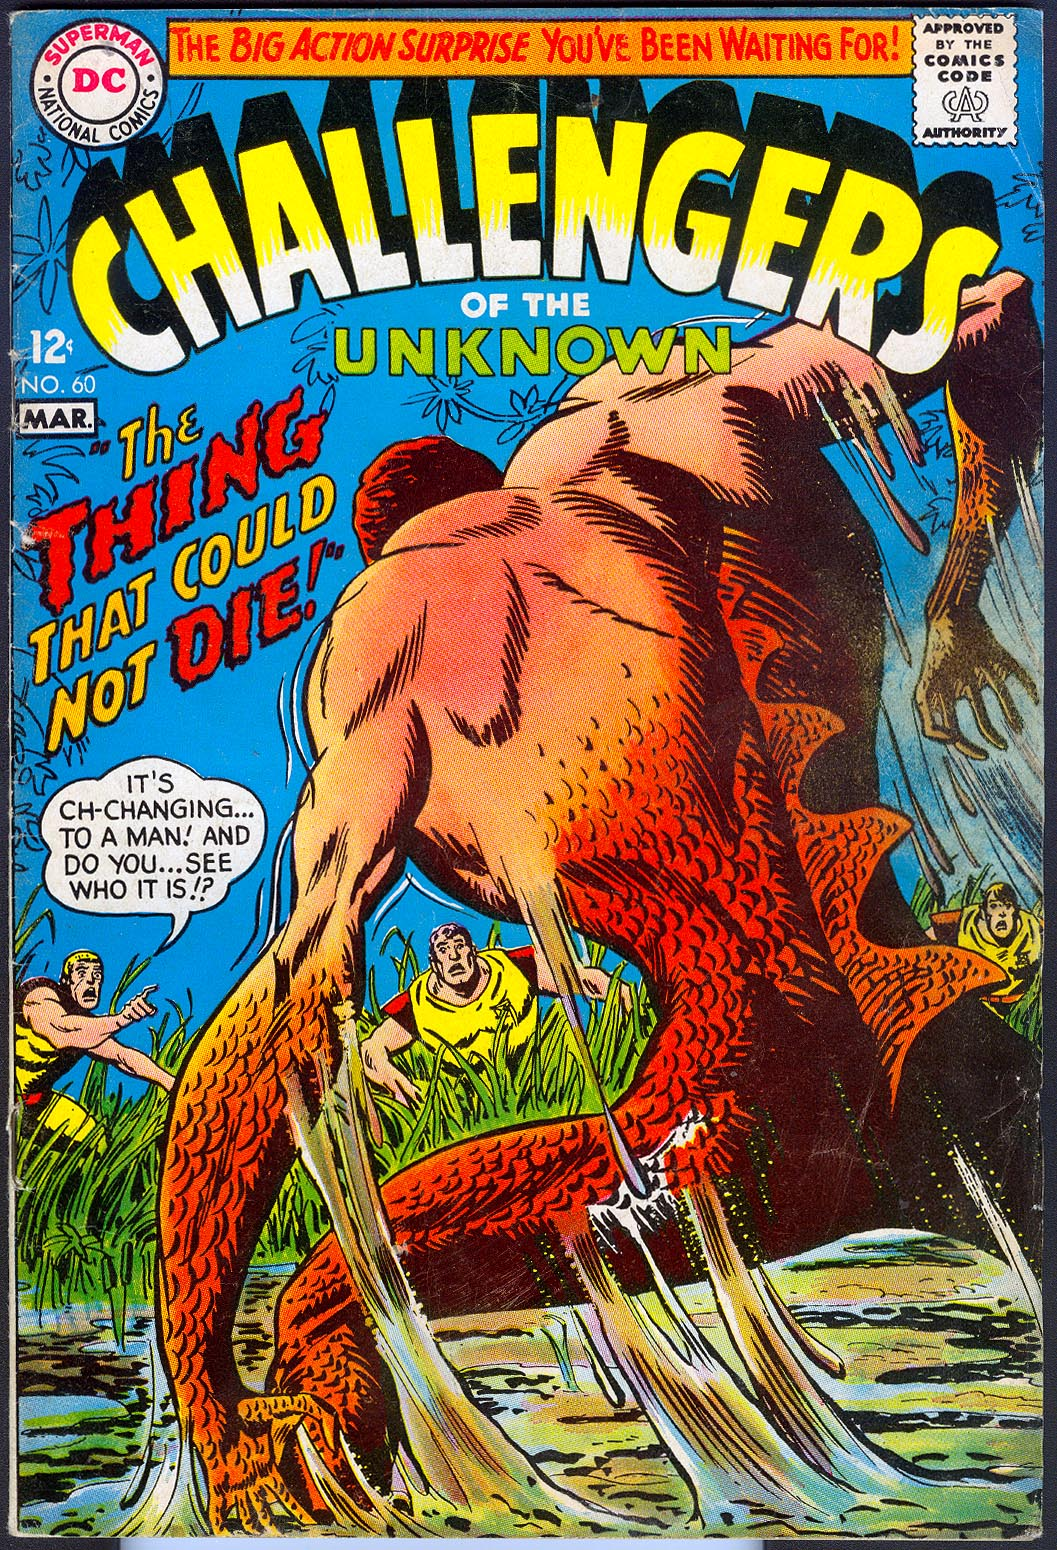 Challengers Of The Unknown vol 1 - 60 -VG